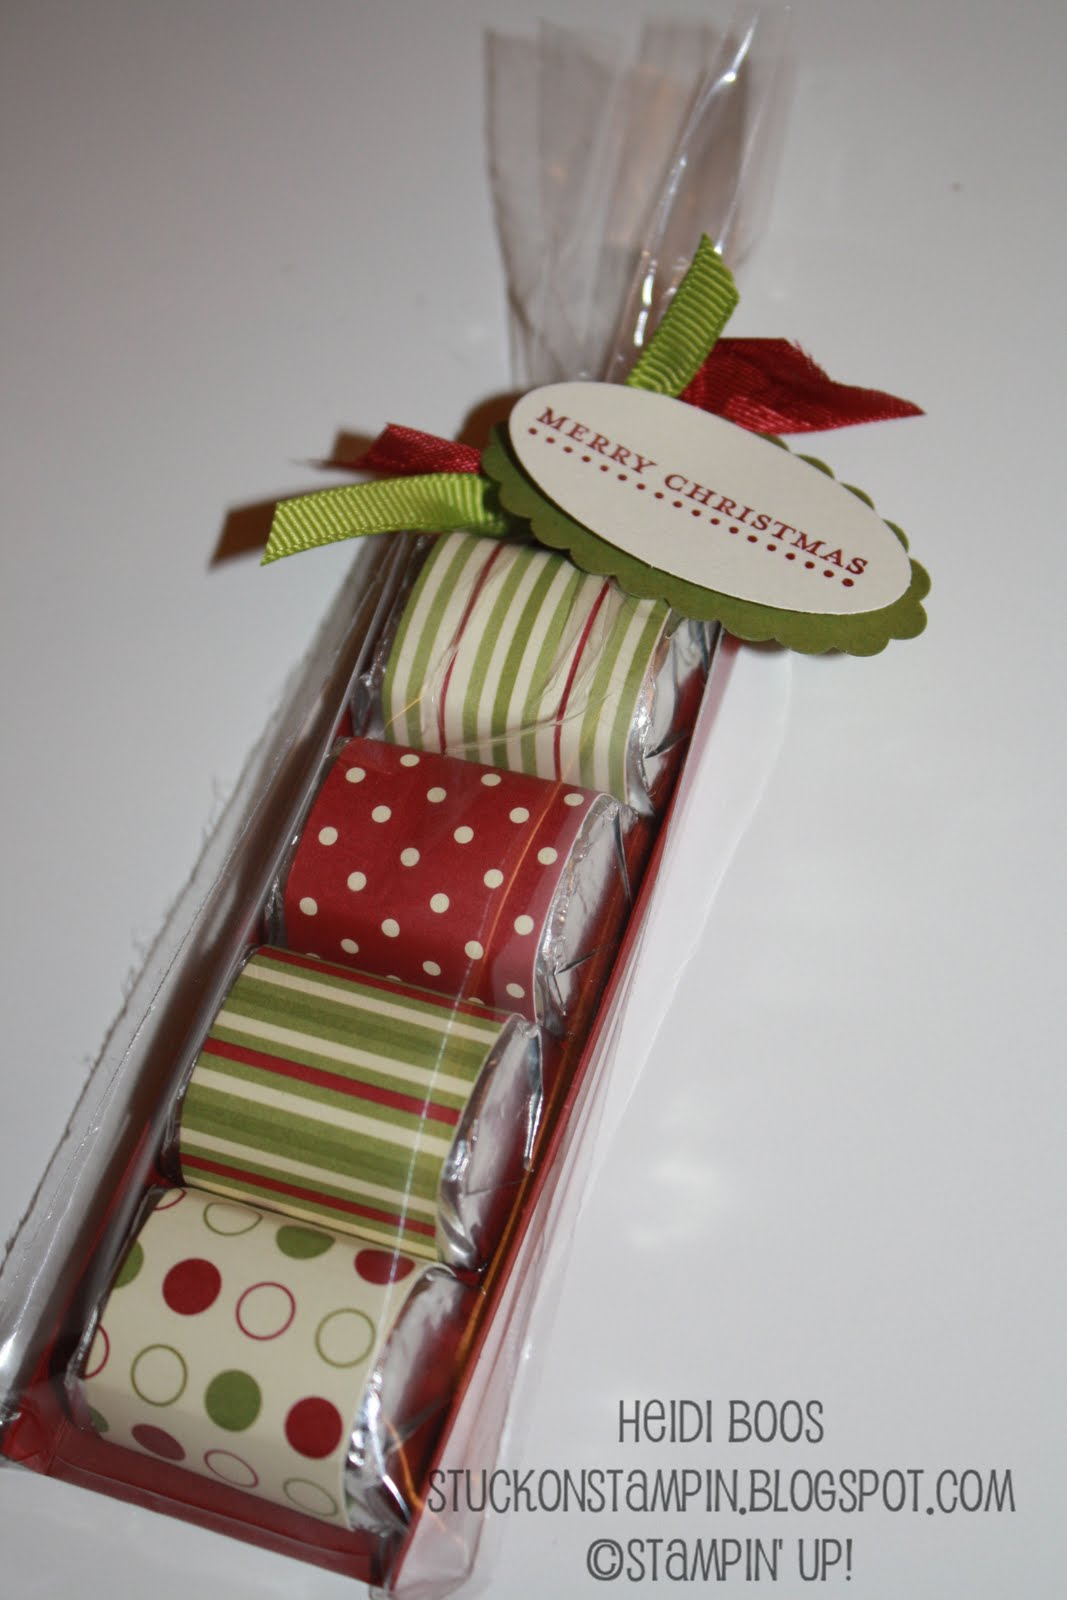 Stuck on Stampin': 12 days of Christmas {projects} - day 4